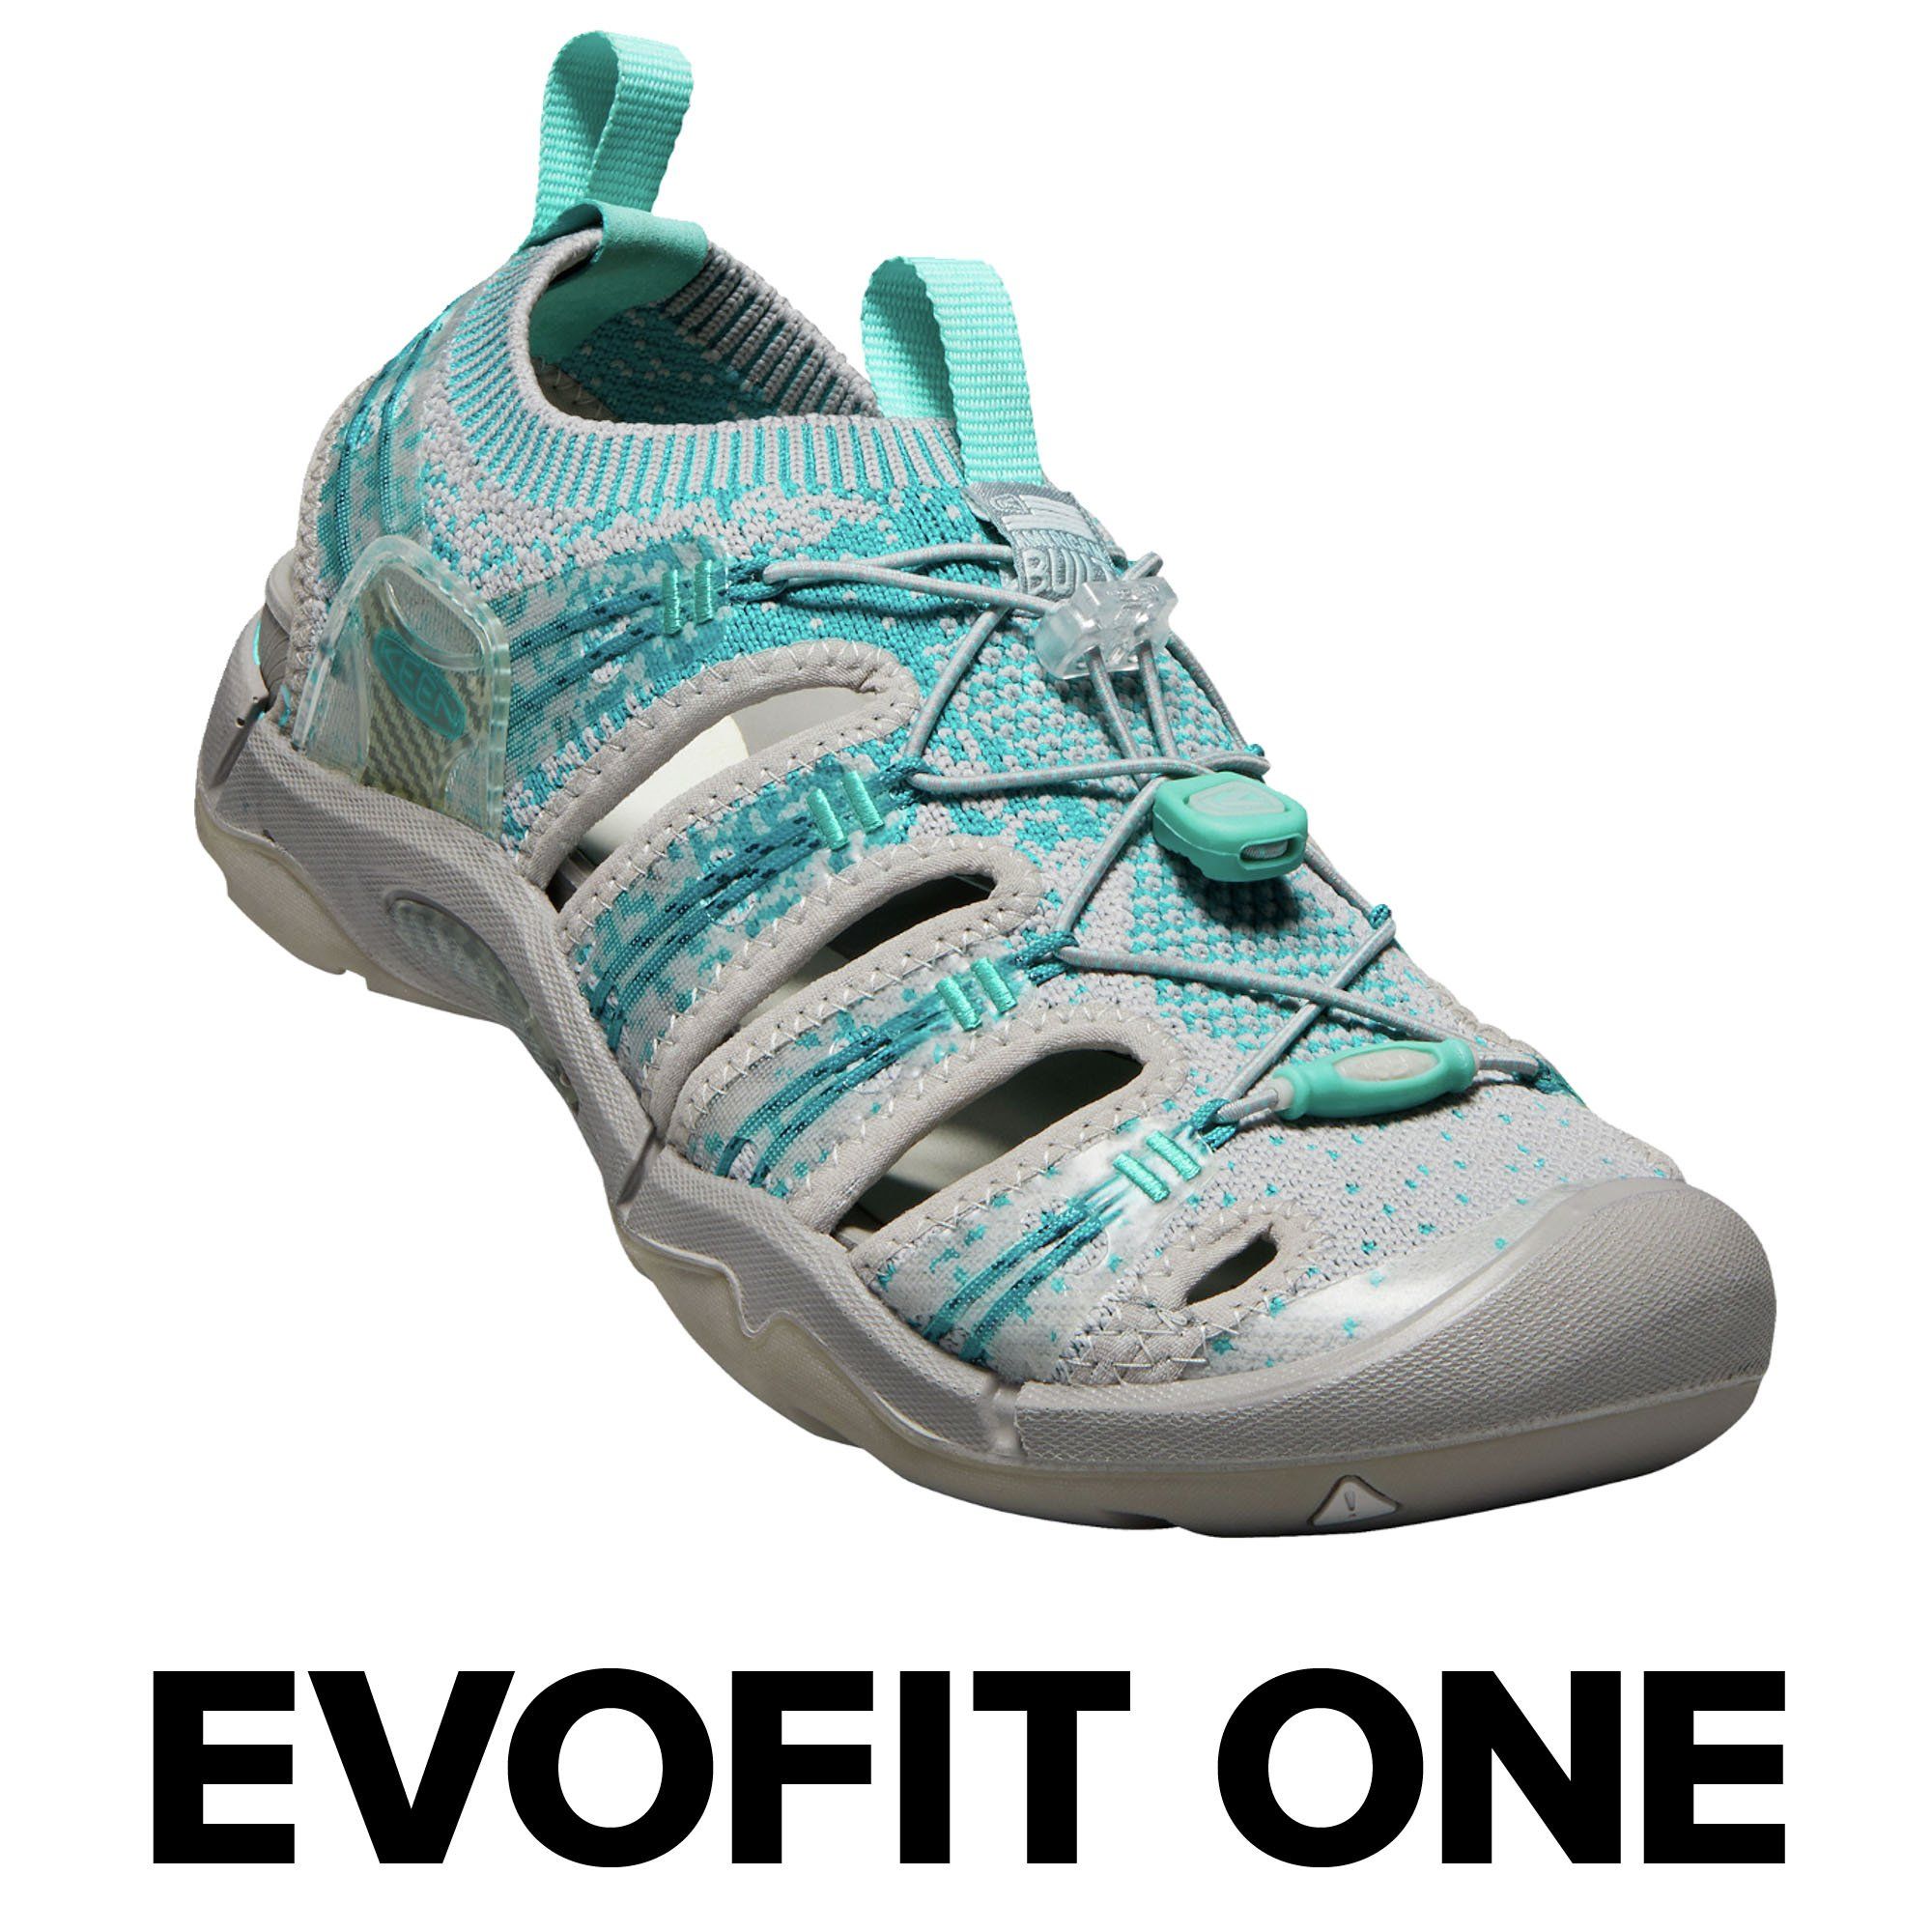 KEEN Women's EVOFIT One Water Sandal for Outdoor Adventures, 9 M US, Paloma/Lake Blue